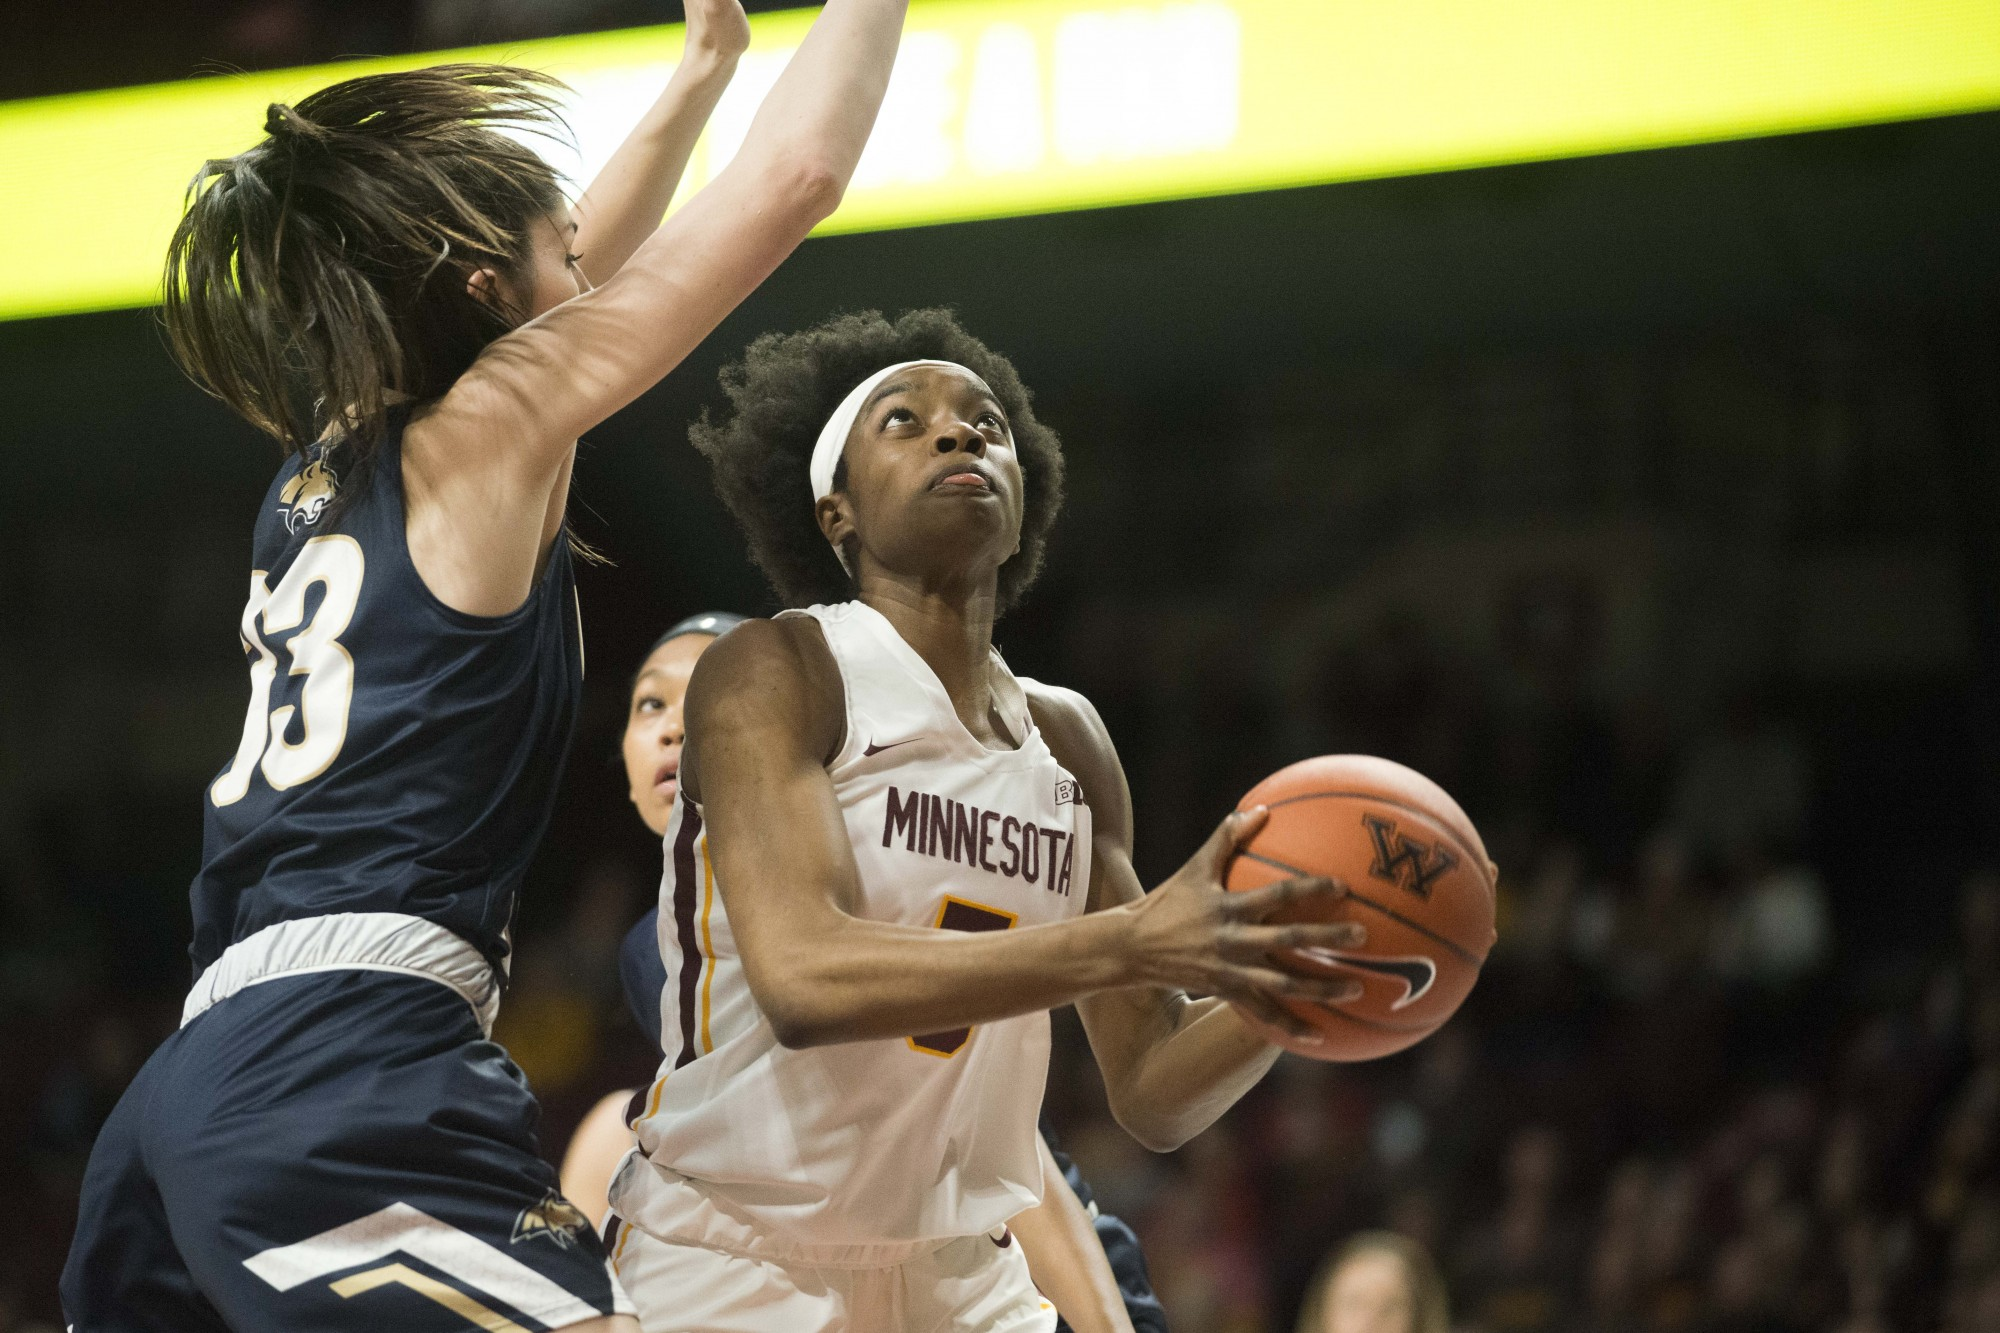 Forward Taiye Bello attempts a layup amidst defenders at Williams Arena on Saturday, Nov. 23. The Gophers went on to defeat Montana State 71-60.